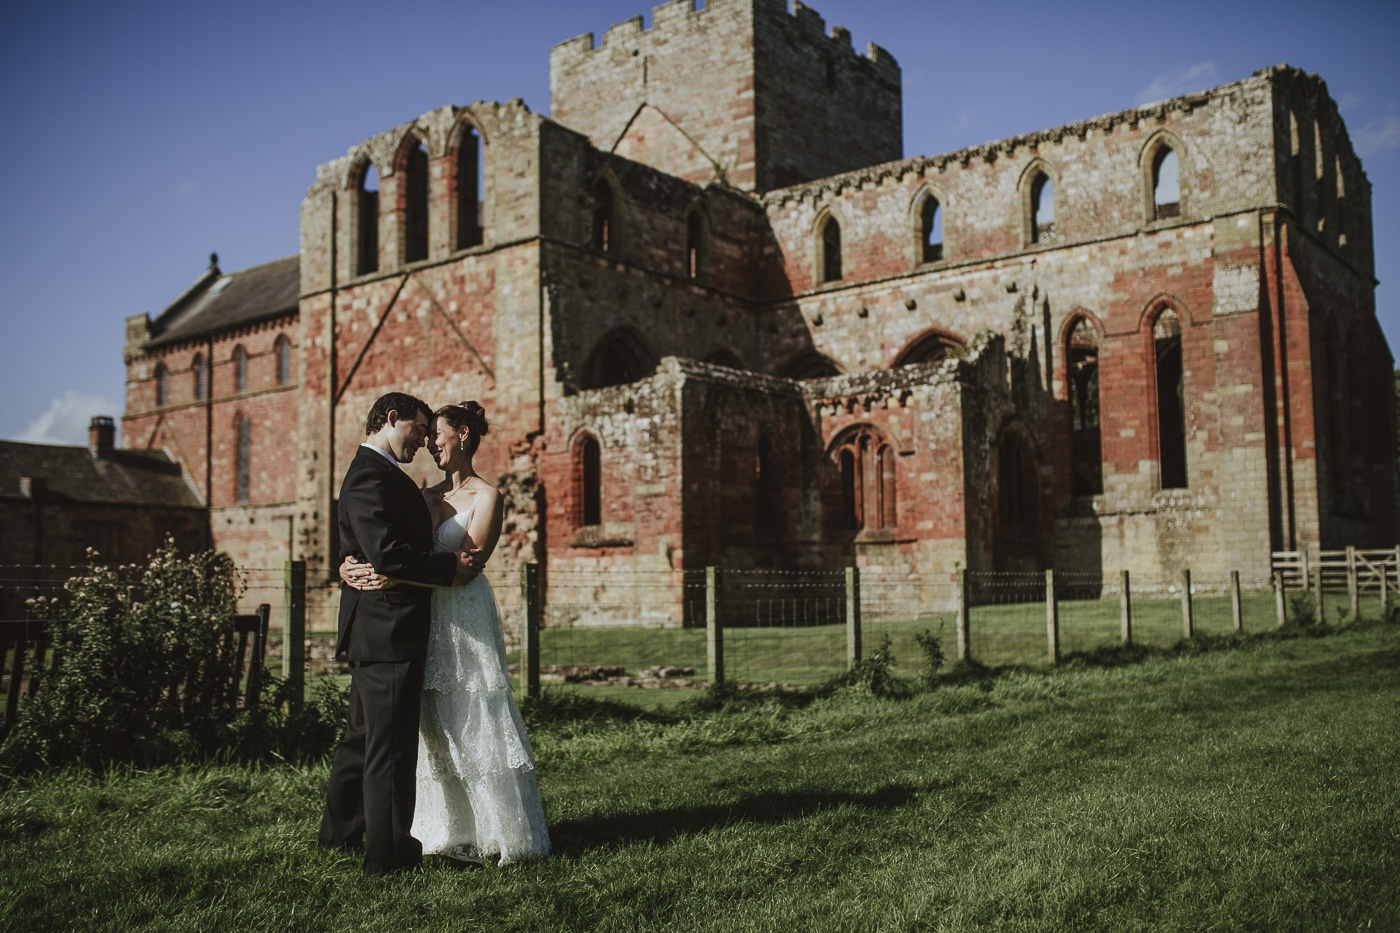 Bride and groom embrace in front of ruins after elopement by Joshua Wyborn Photographic